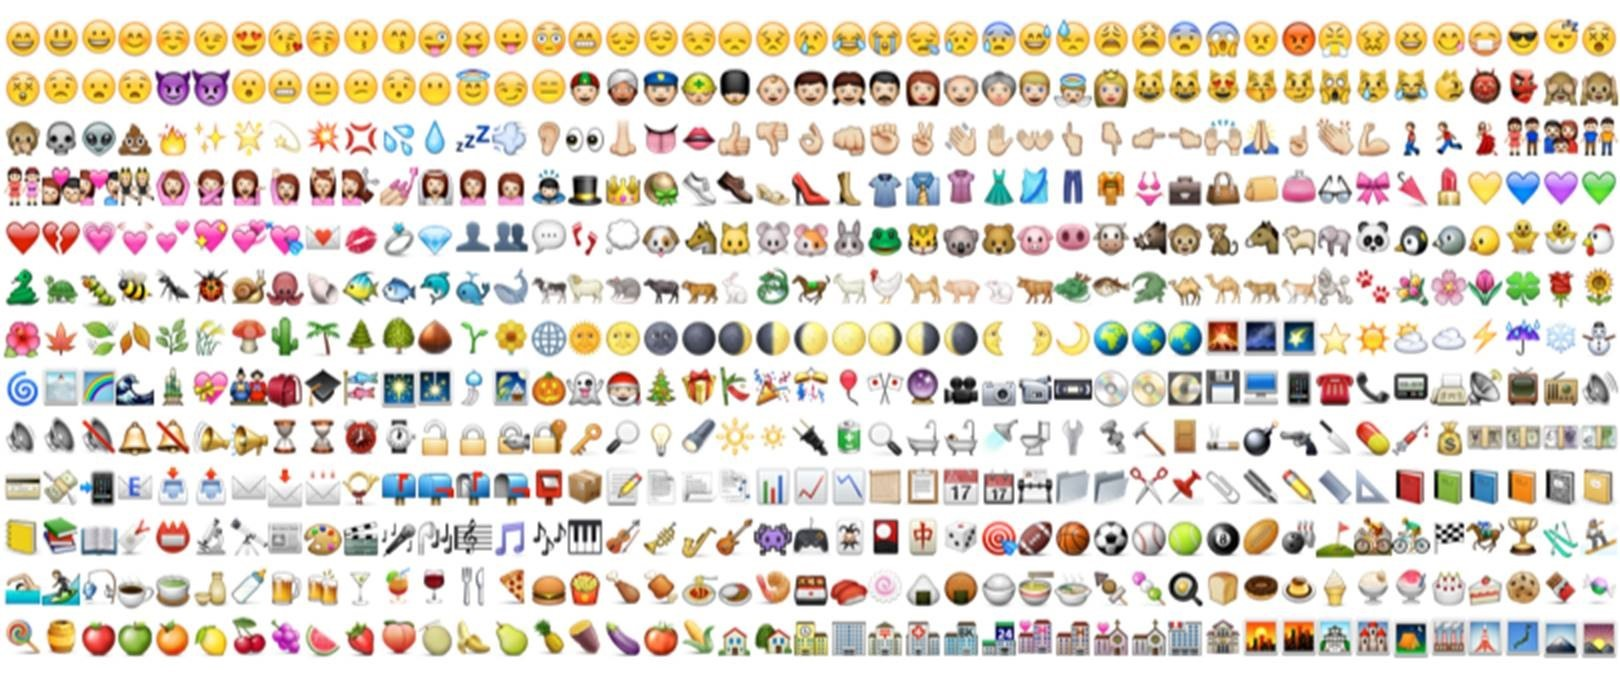 Using Emojis in Ad Text Boosts CTR! | WordStream